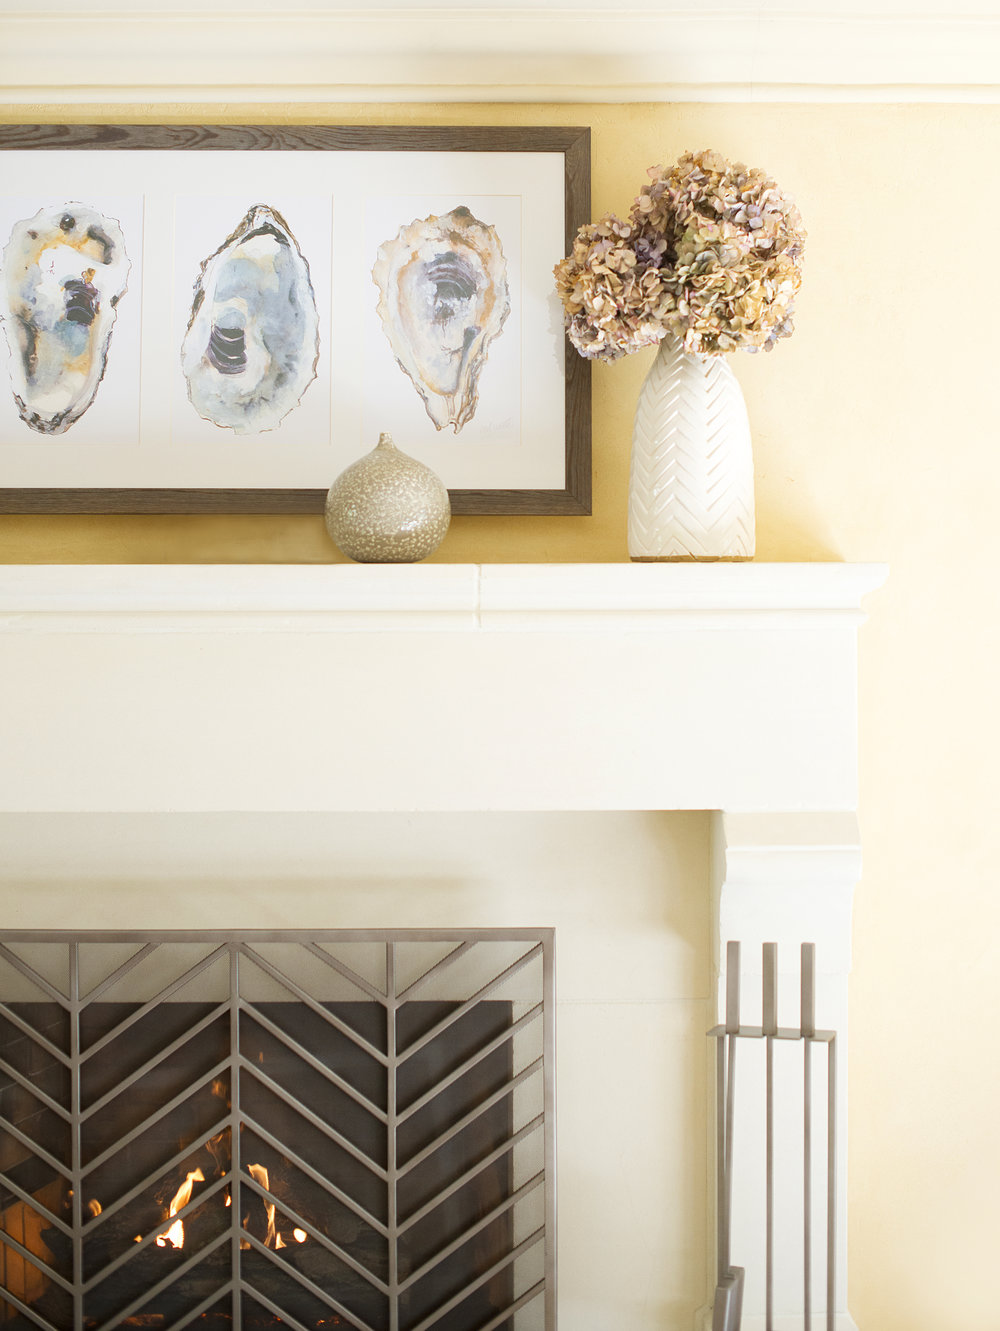 My Splendid Living has partnered with Crate & Barrel for a casual Fireplace display! #cratestyle